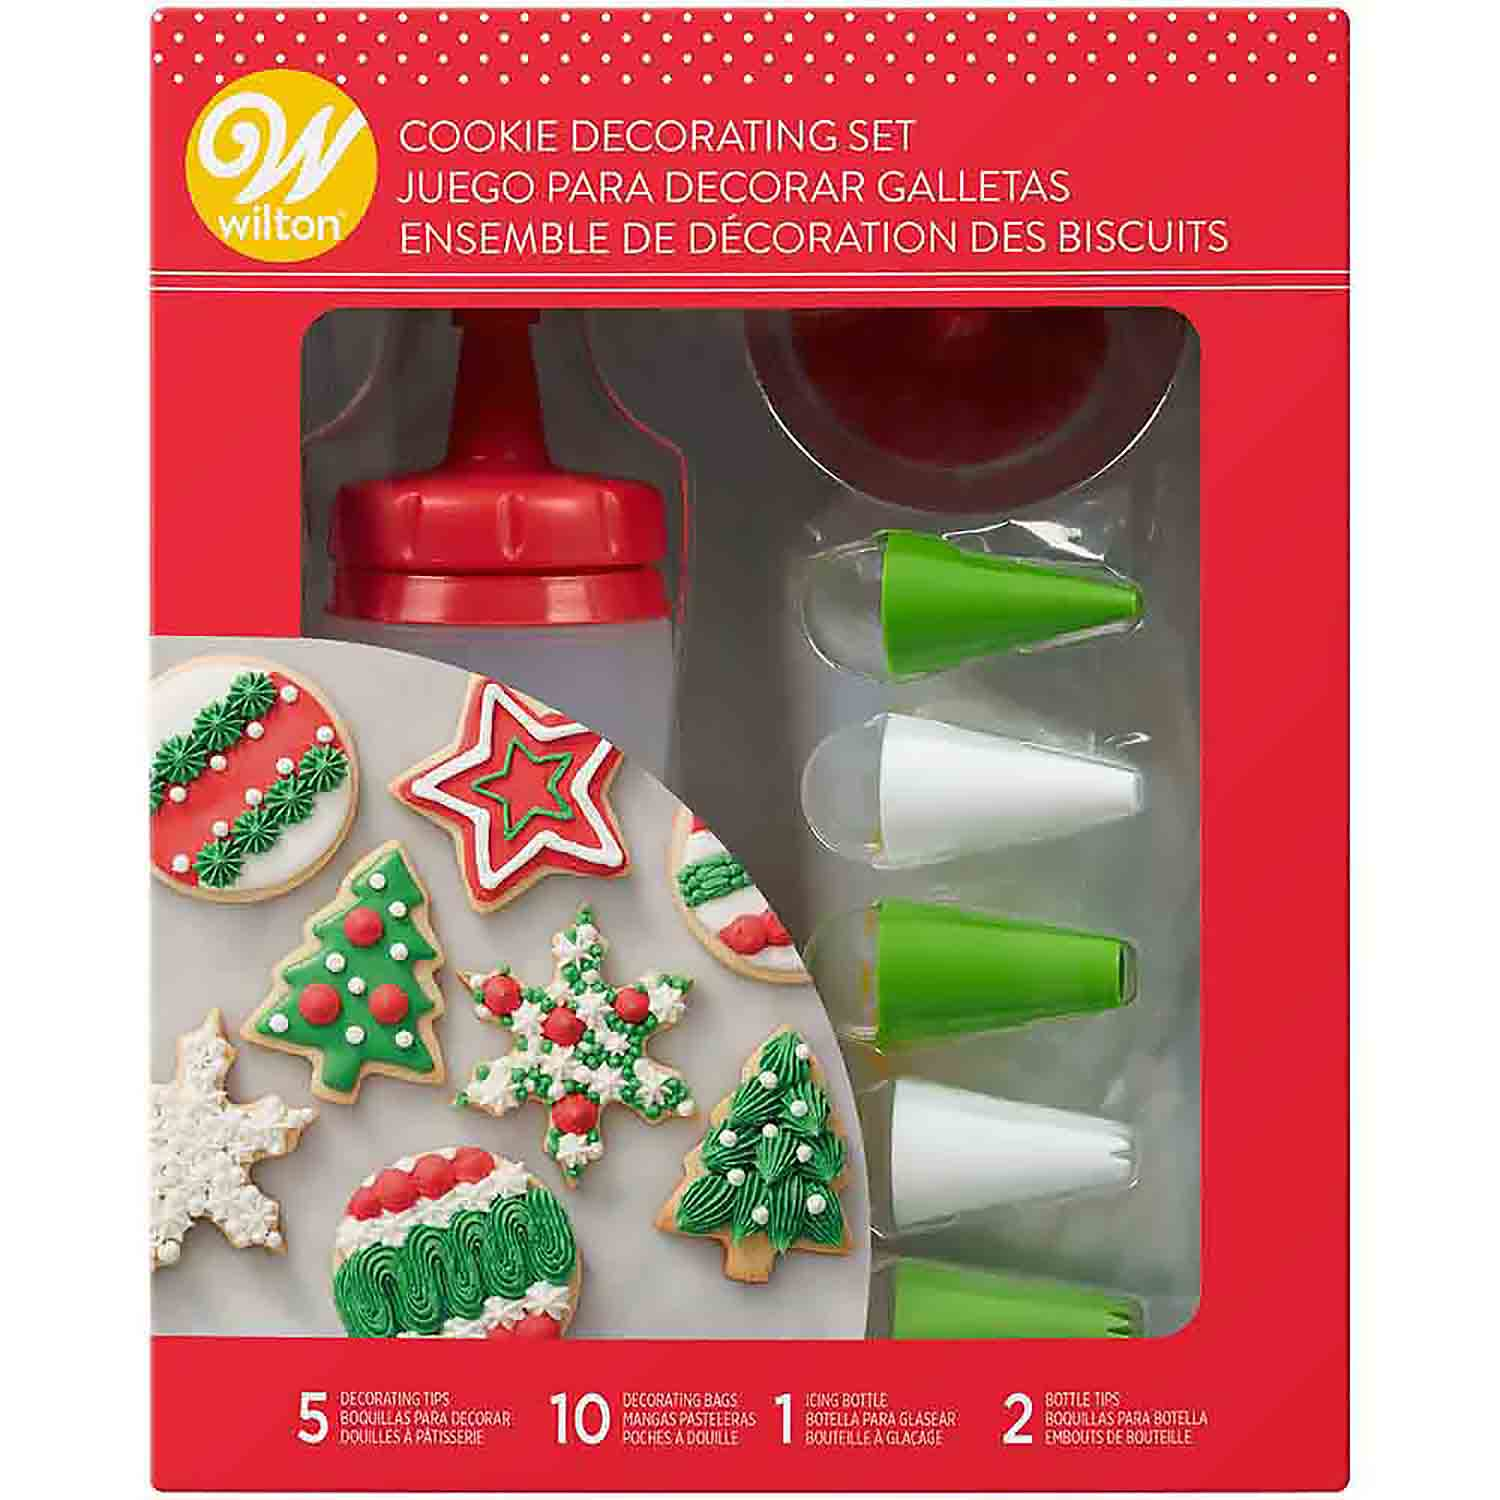 Cookie Decorating Set